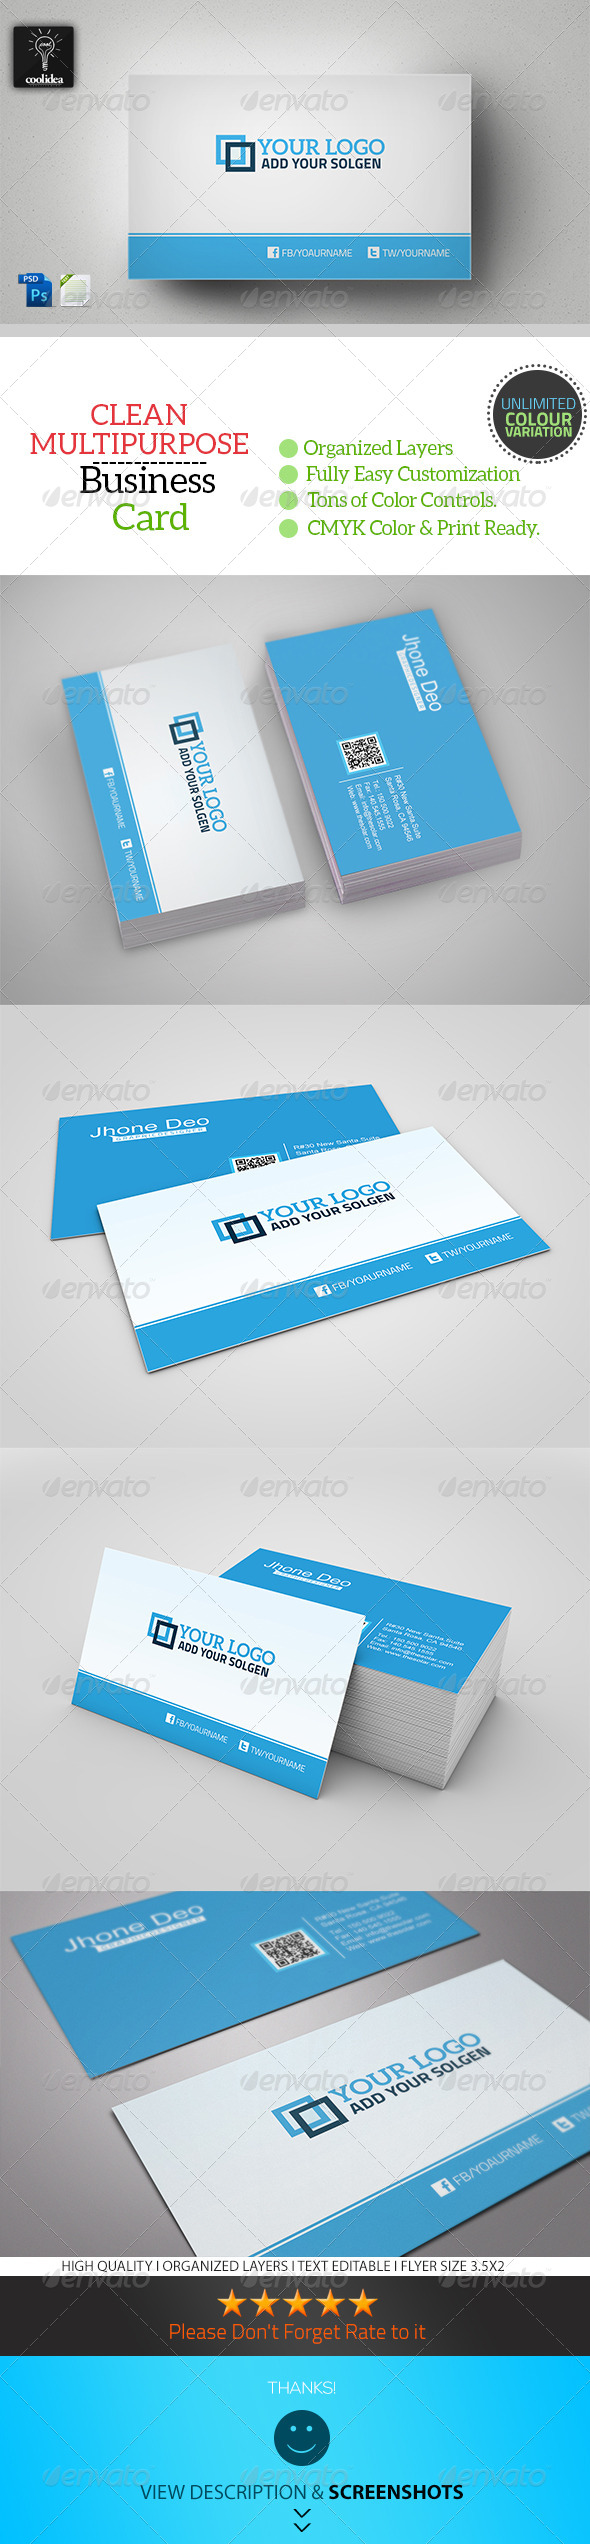 GraphicRiver Corporate Business Card Template Vol 01 6794152